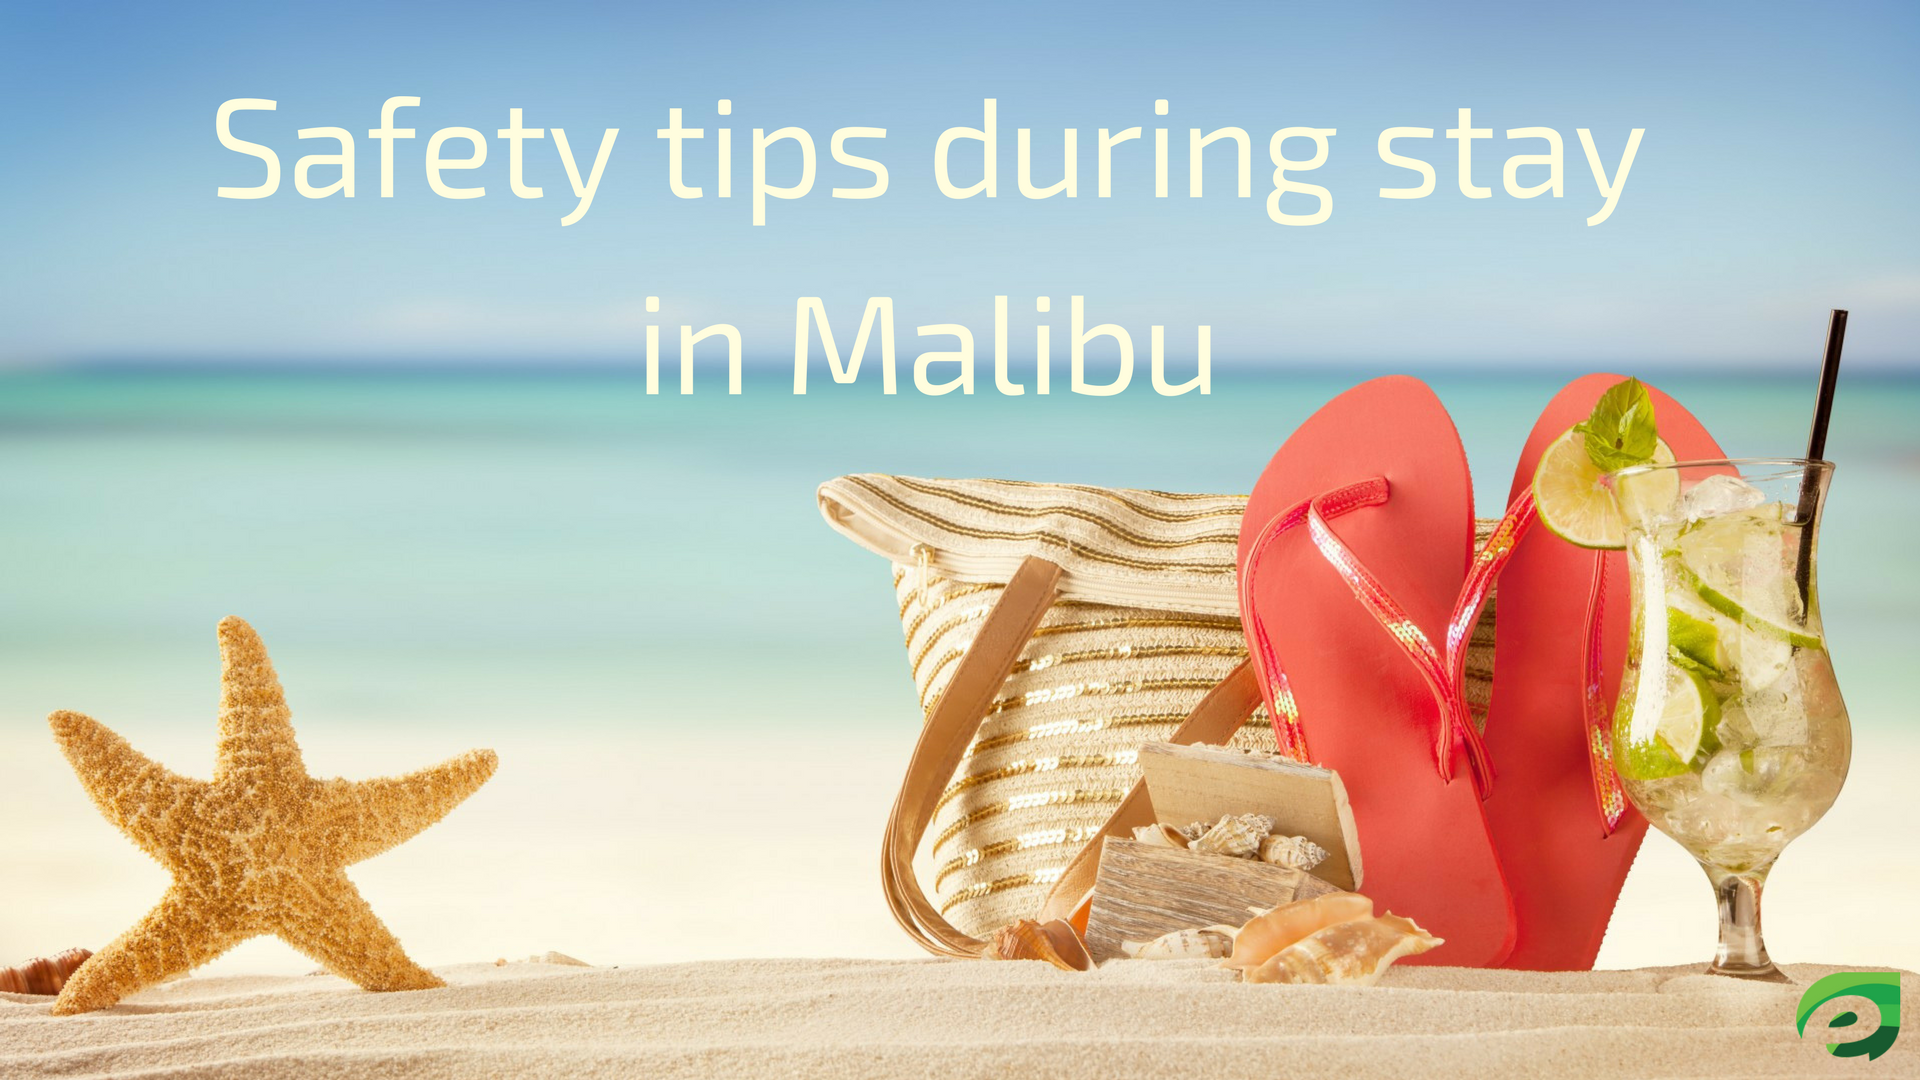 malibu travel guide - Safety tips during stay in Malibu